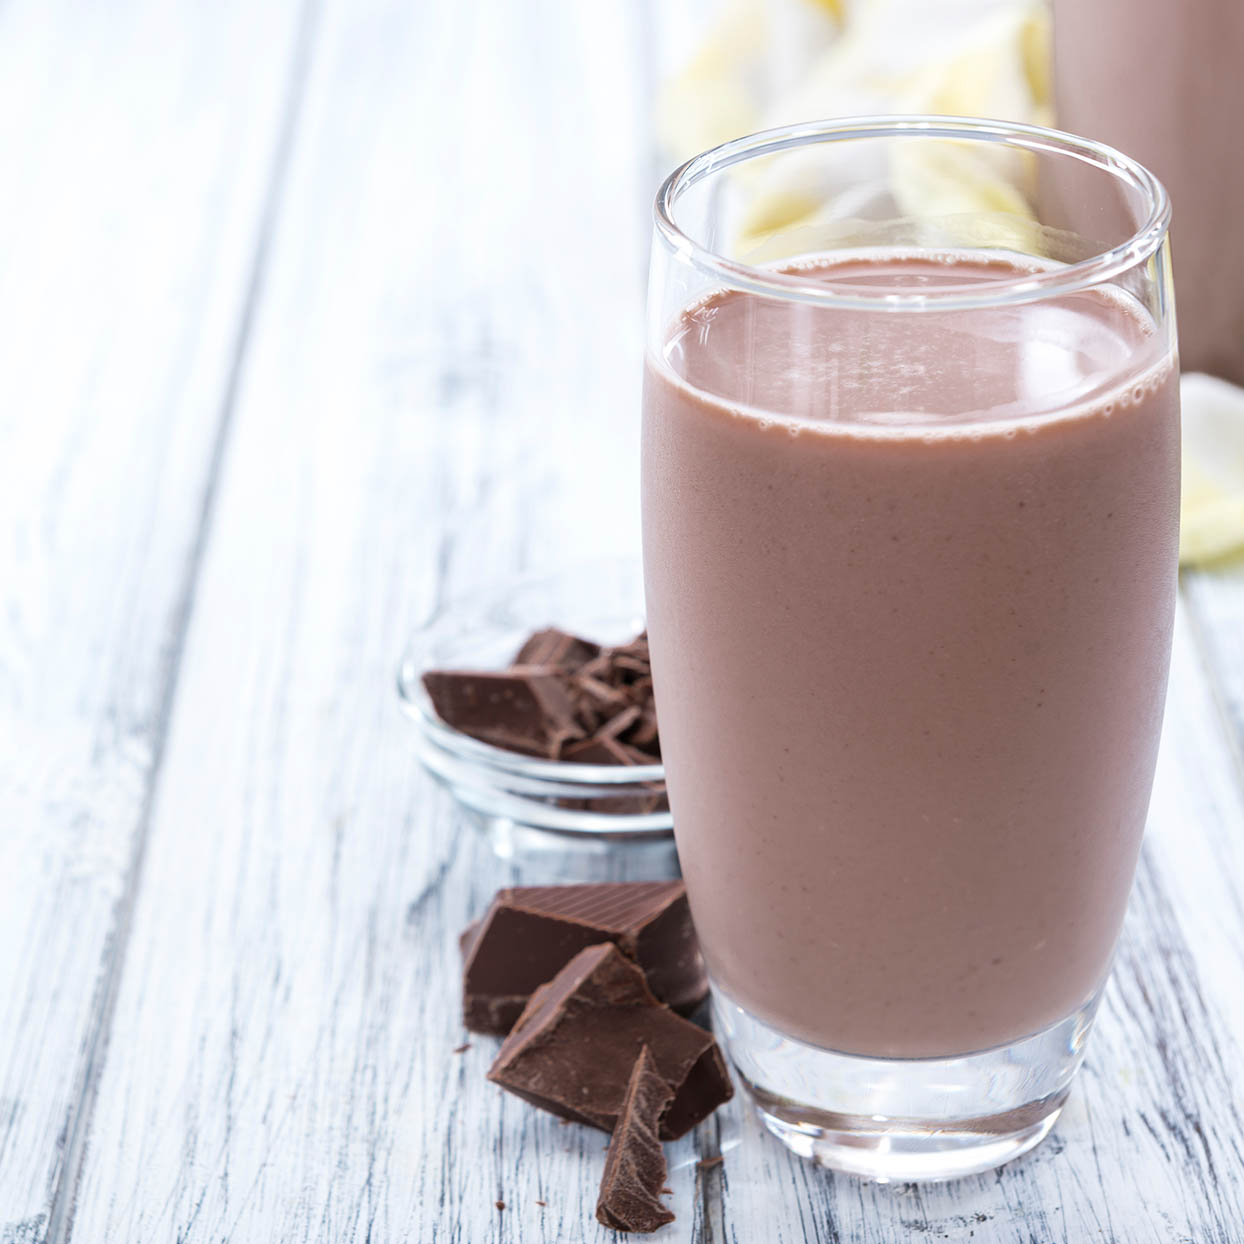 Chocolate Protein Oat Milk Is Going to Be Your New Go-To Recovery Drink